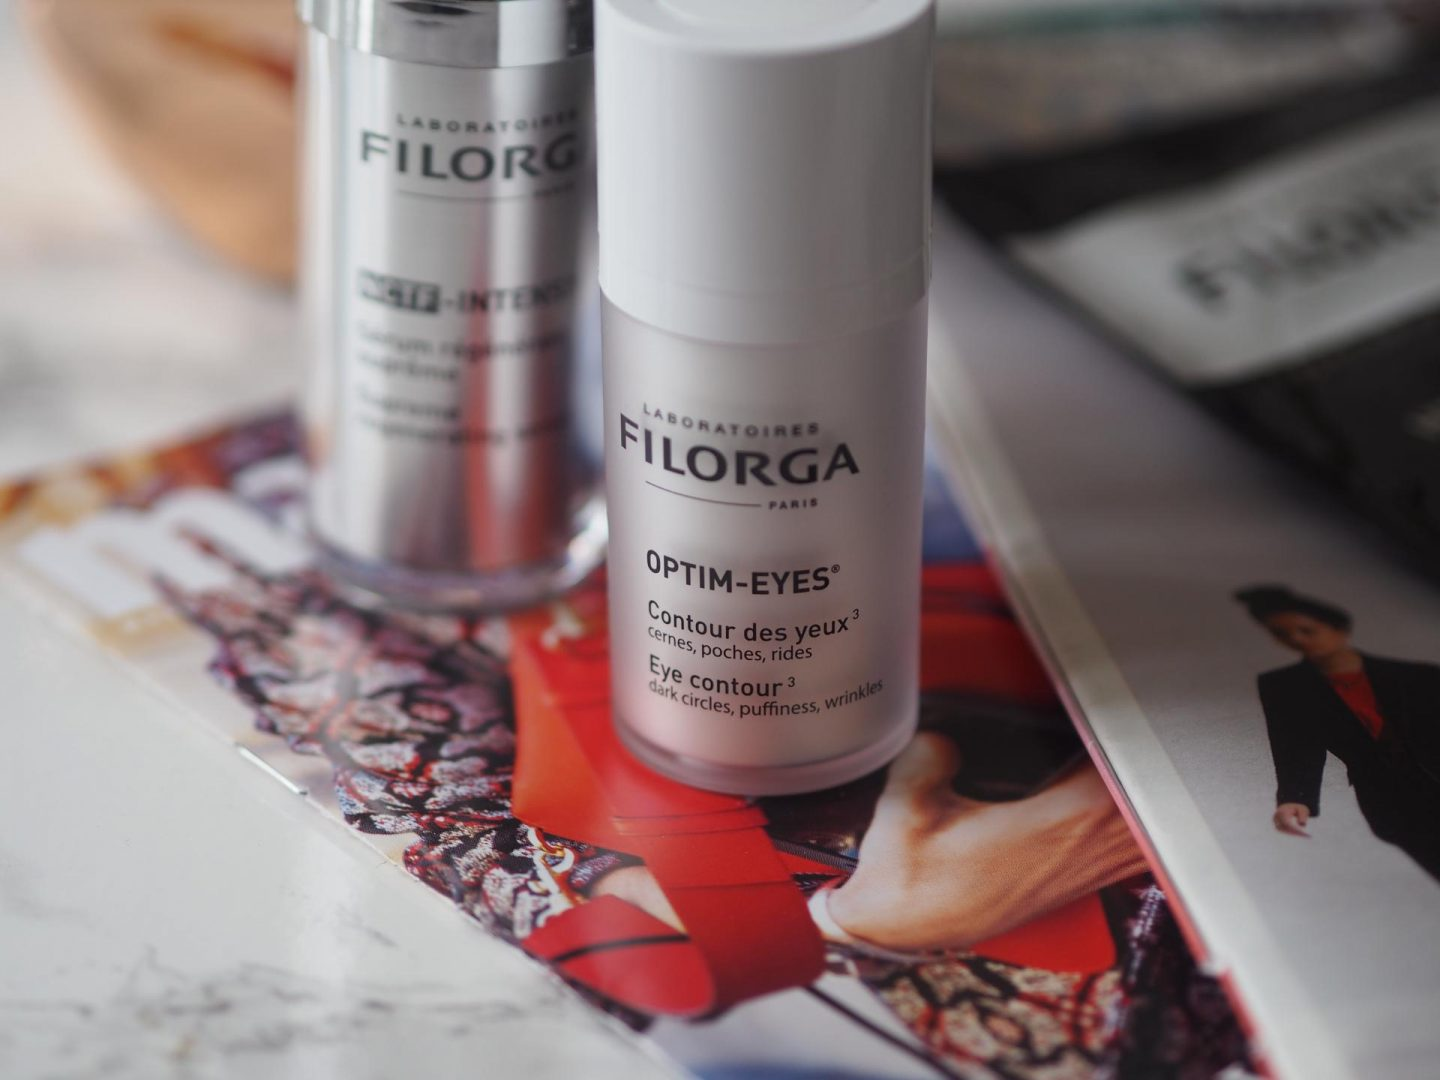 Filorga Optim-Eyes Contour Cream